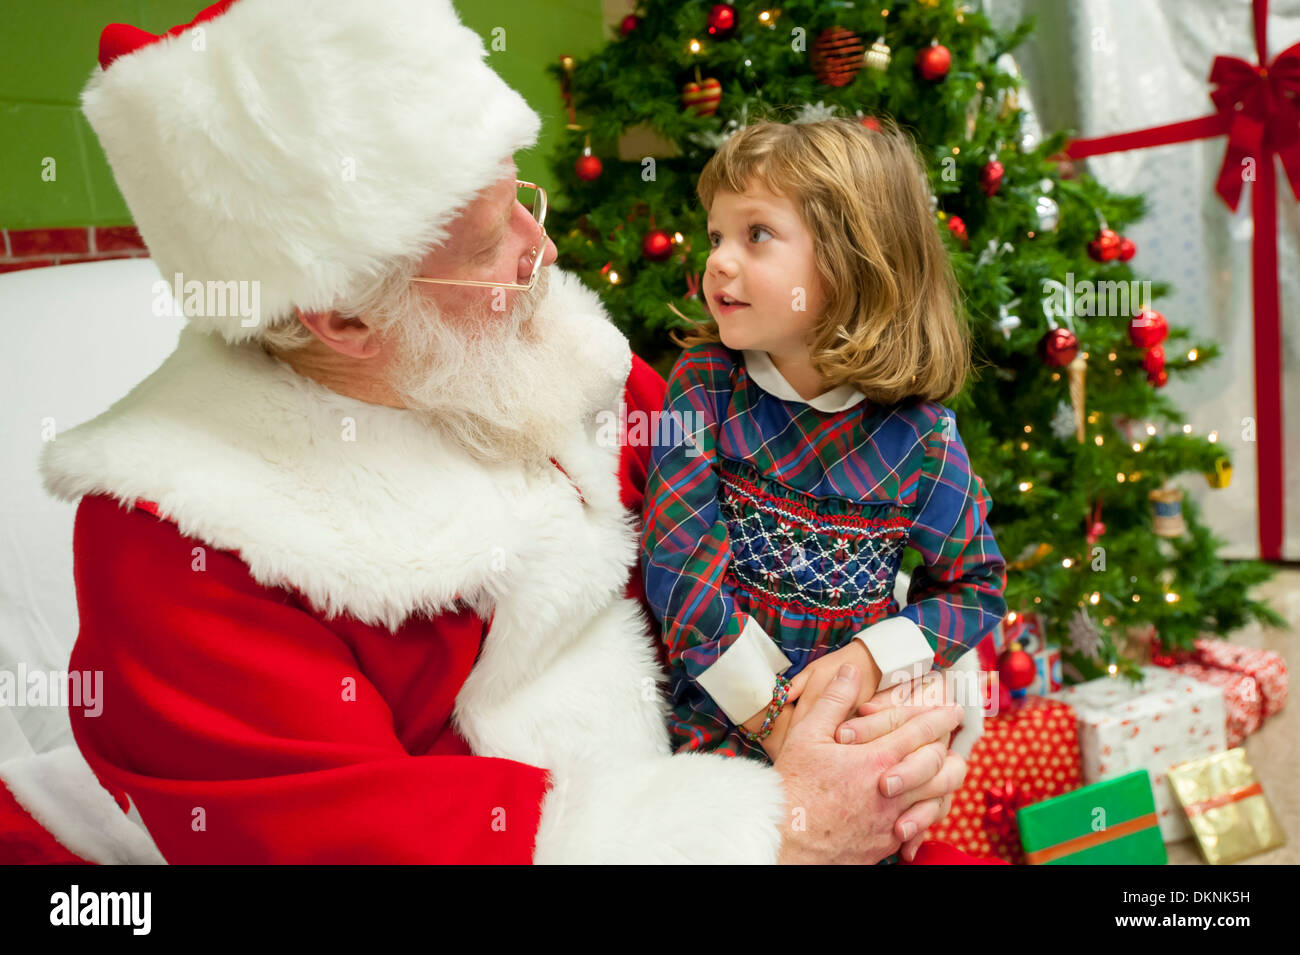 santa-claus-with-a-young-girl-6-7-8-9-on